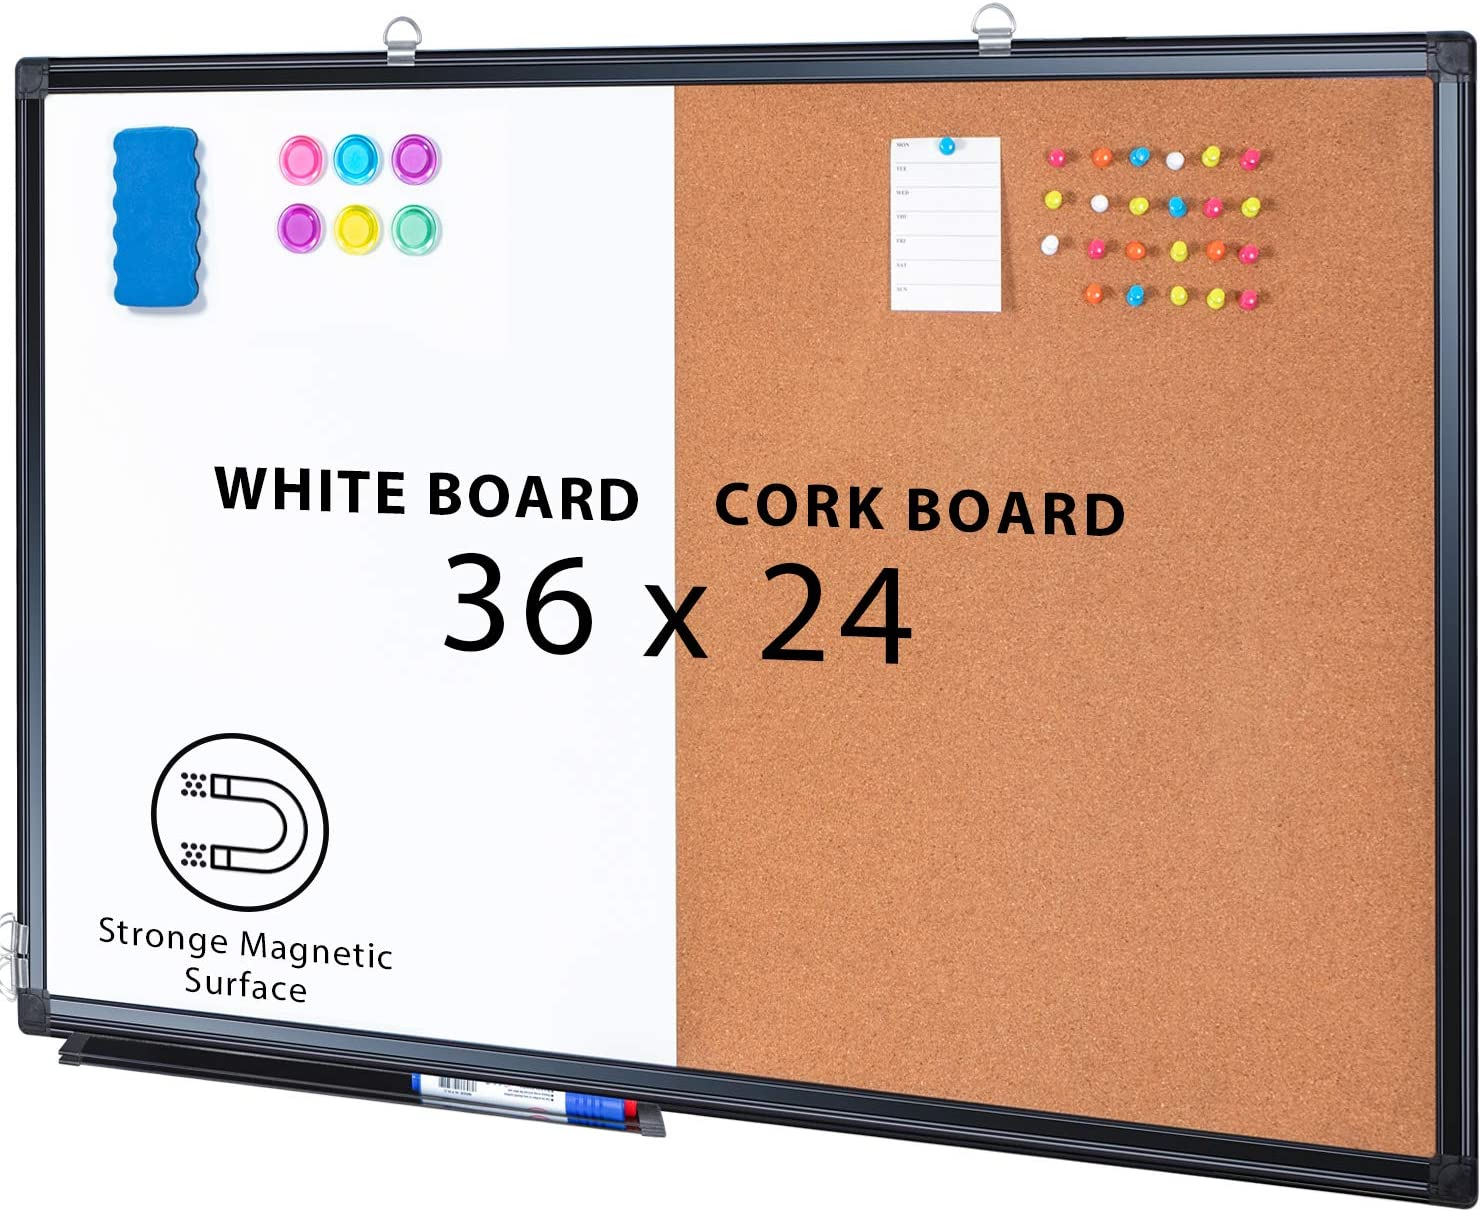 Combination Board, 36 x 24 Magnetic Whiteboard & Cork Board, Dry Erase Board Bulletin Combo Board for Home Office Classroom, Wall Mounted Memo Message Board